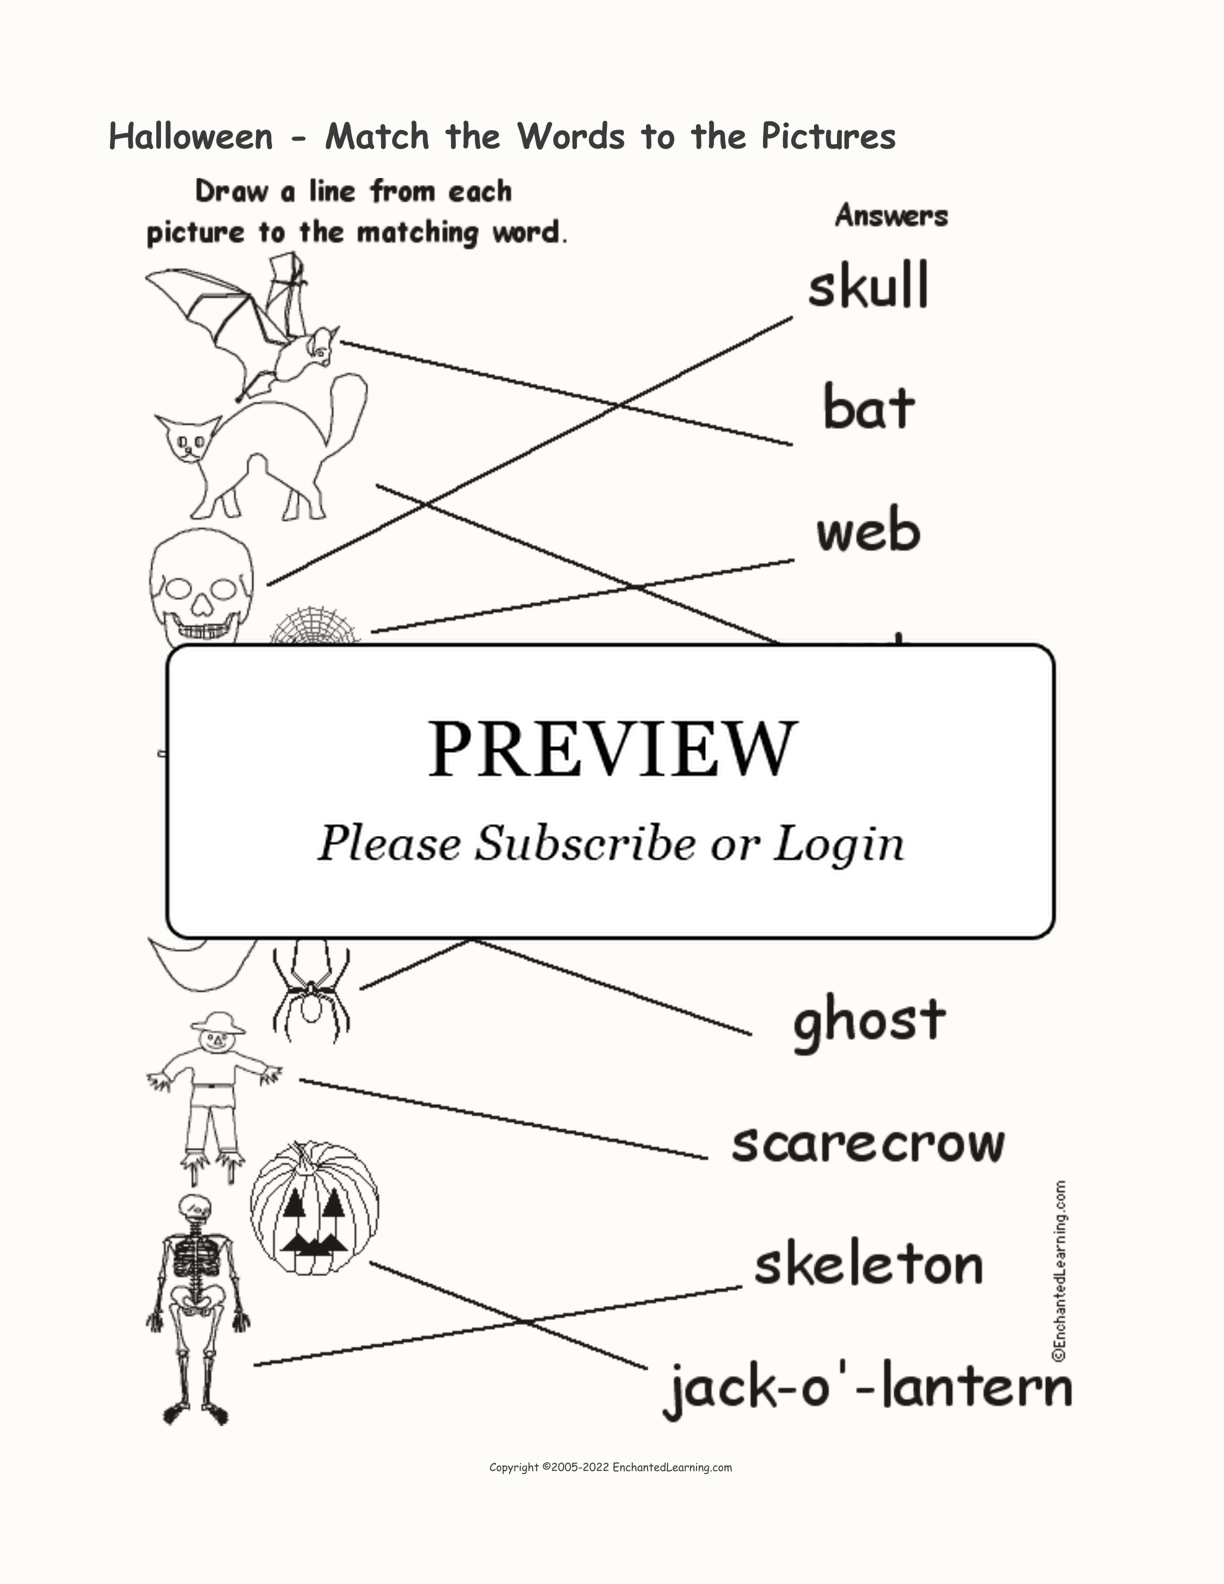 Halloween - Match the Words to the Pictures interactive worksheet page 2